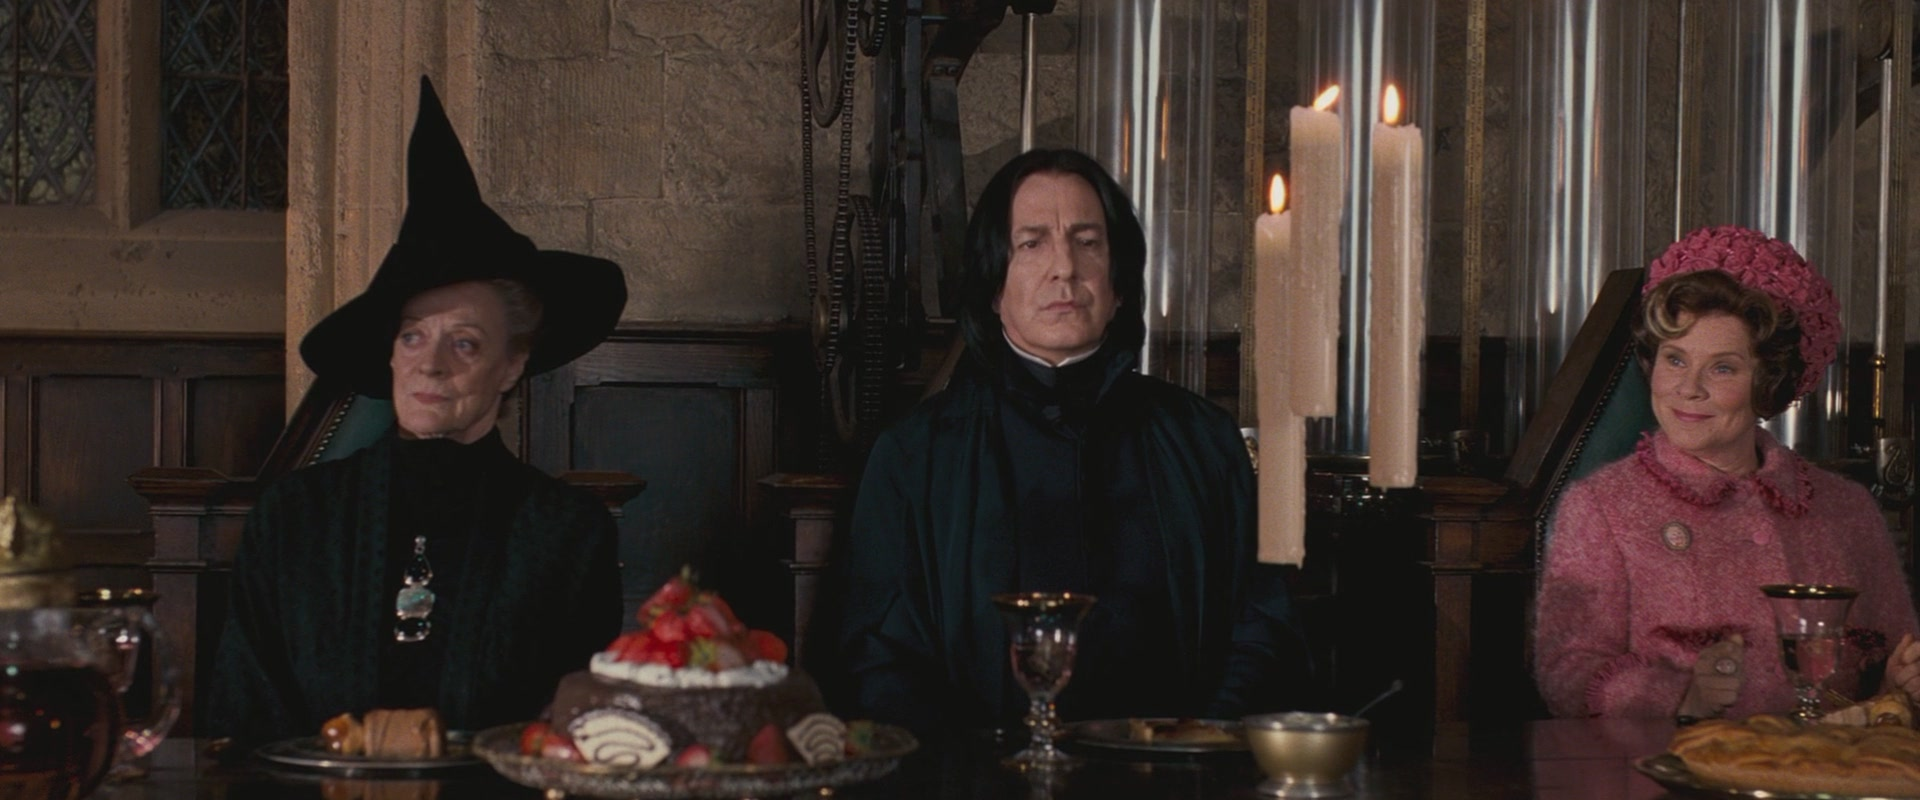 harry potter and the order of the phoenix essay Harry potter and the order of the phoenix homework help questions was harry potter chosen by dumbledore, to fulfill the prophecy if not, who was he chosen by.